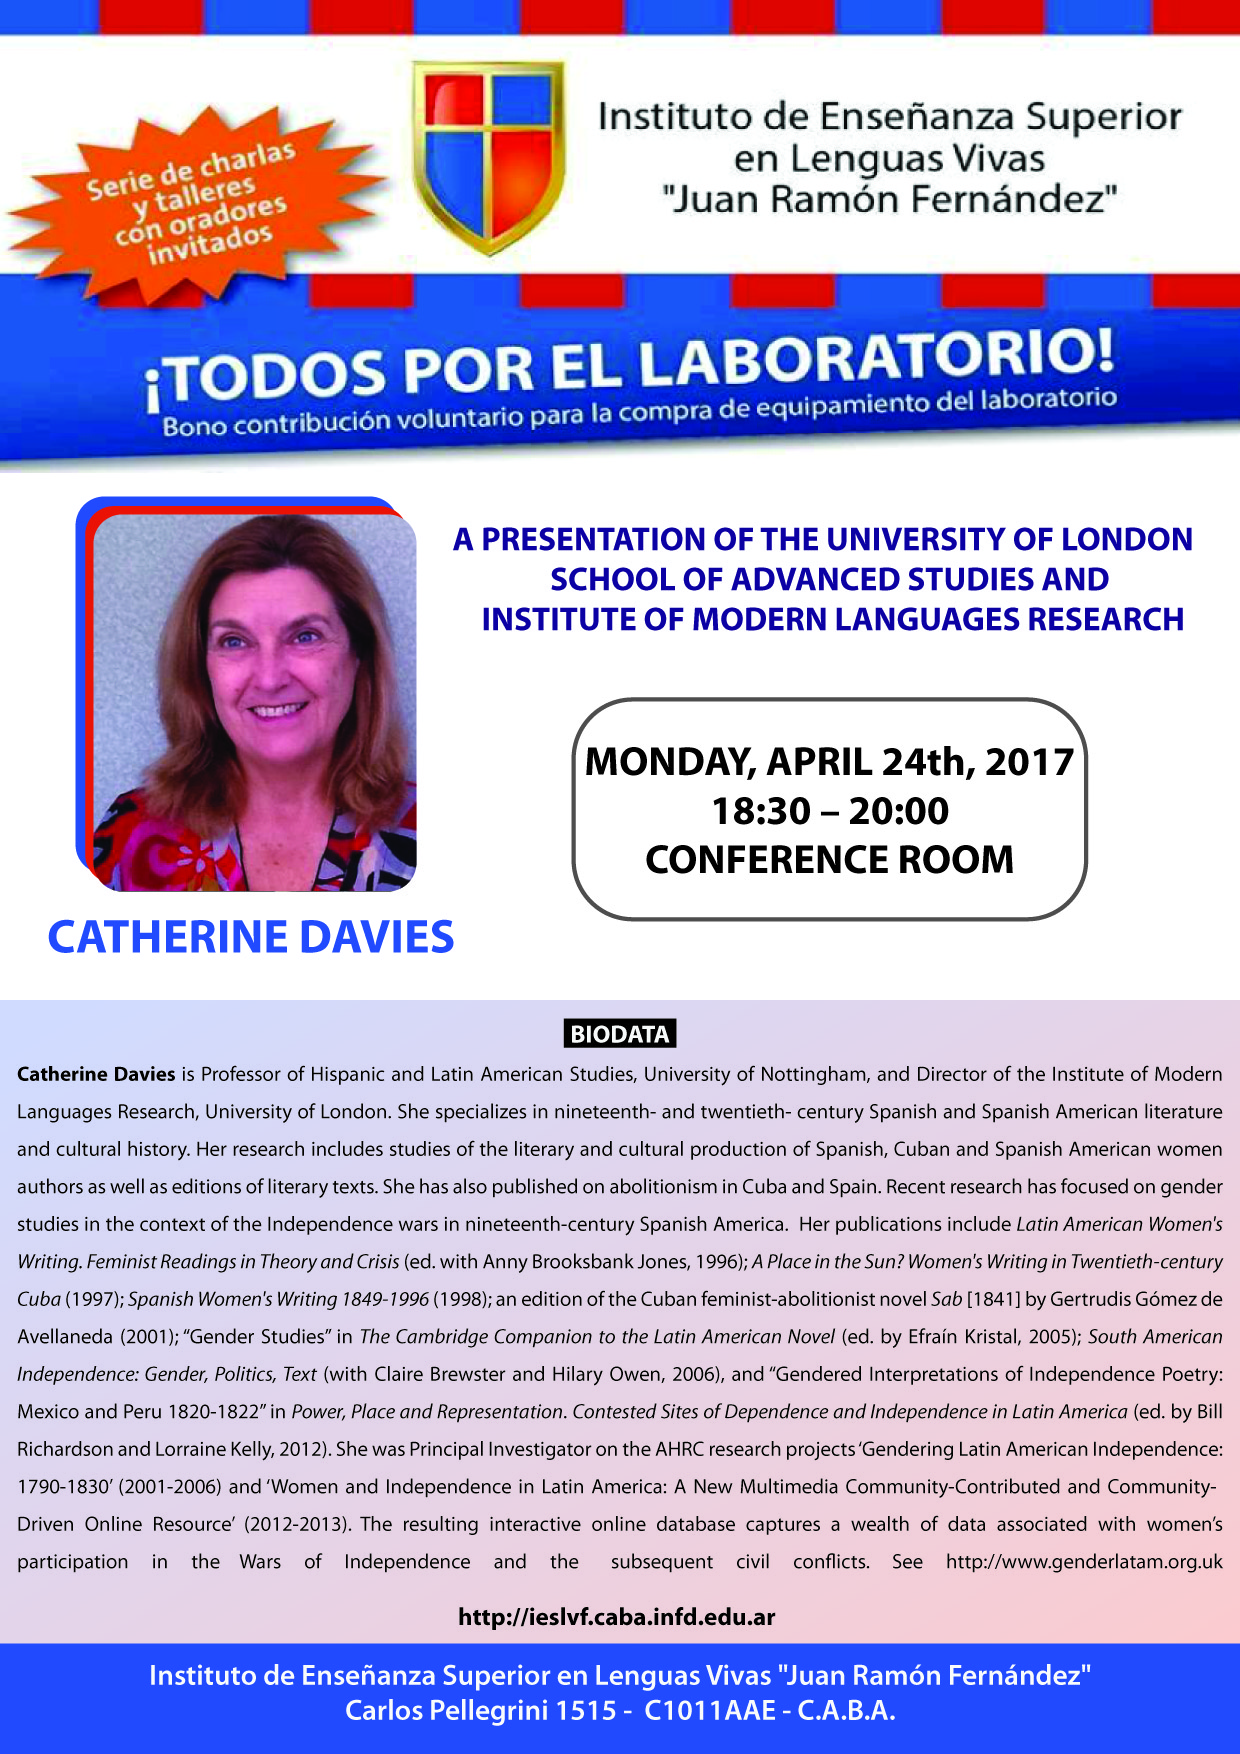 1. Catherine Davies_24 de abril_salon de conferencias